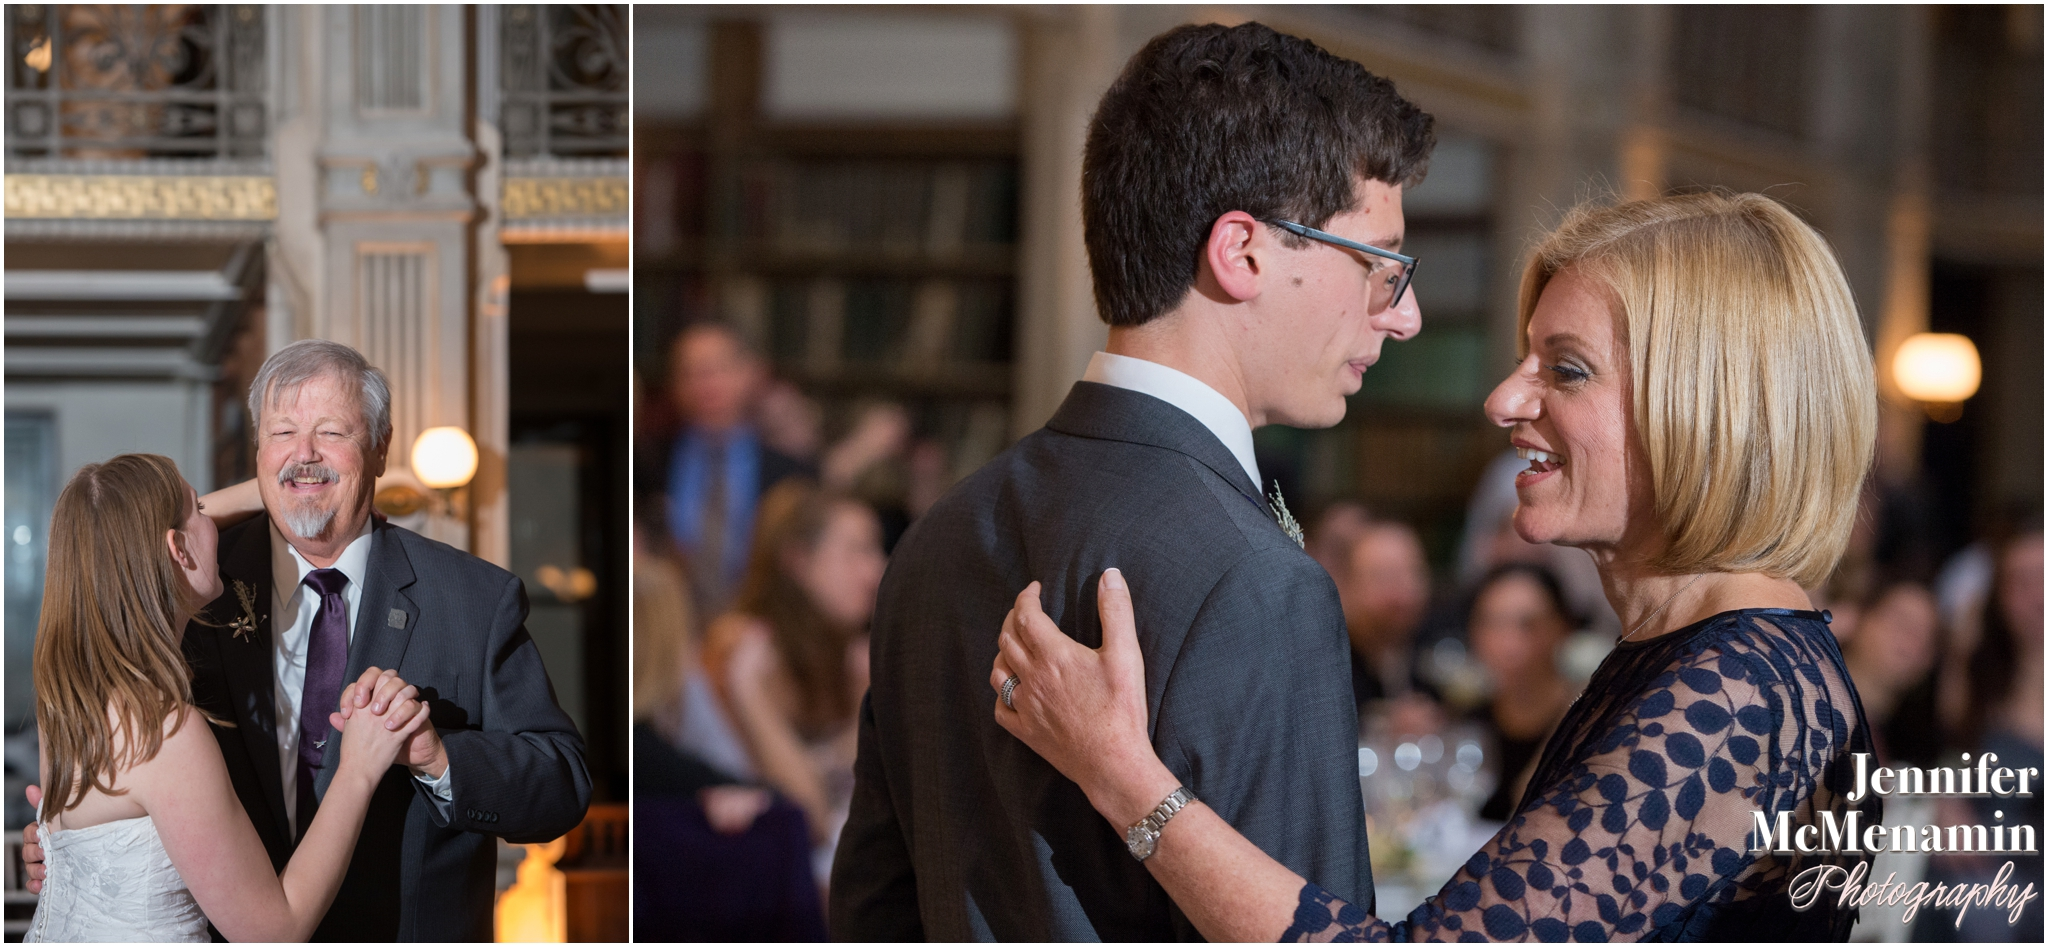 0108-WebbSlivnick_04065-0823_JenniferMcMenaminPhotography_George-Peabody-Library-wedding_Baltimore-wedding-photography_Baltimore-wedding-photographer